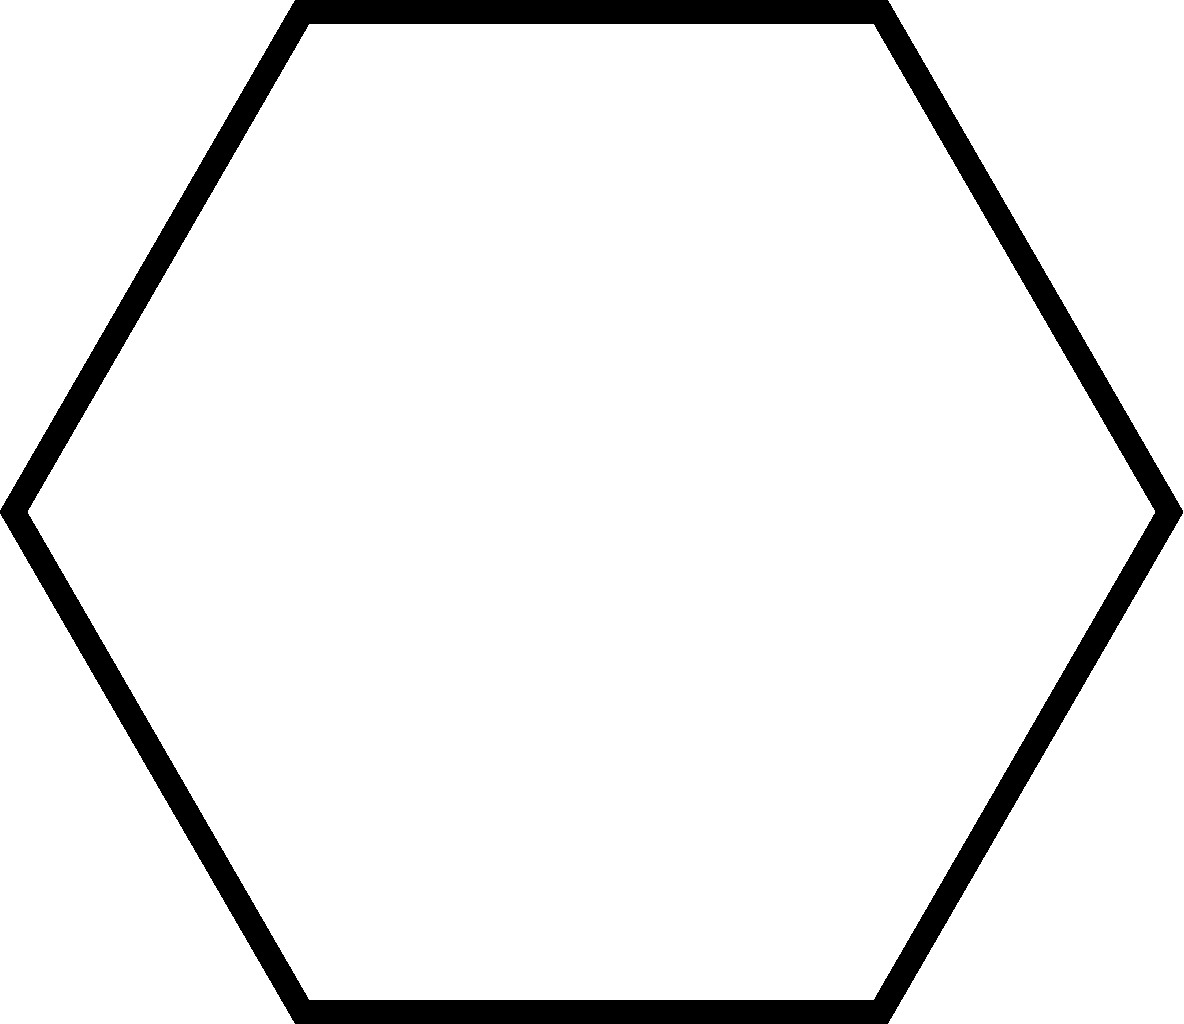 Hexagon Silhouette At Getdrawings